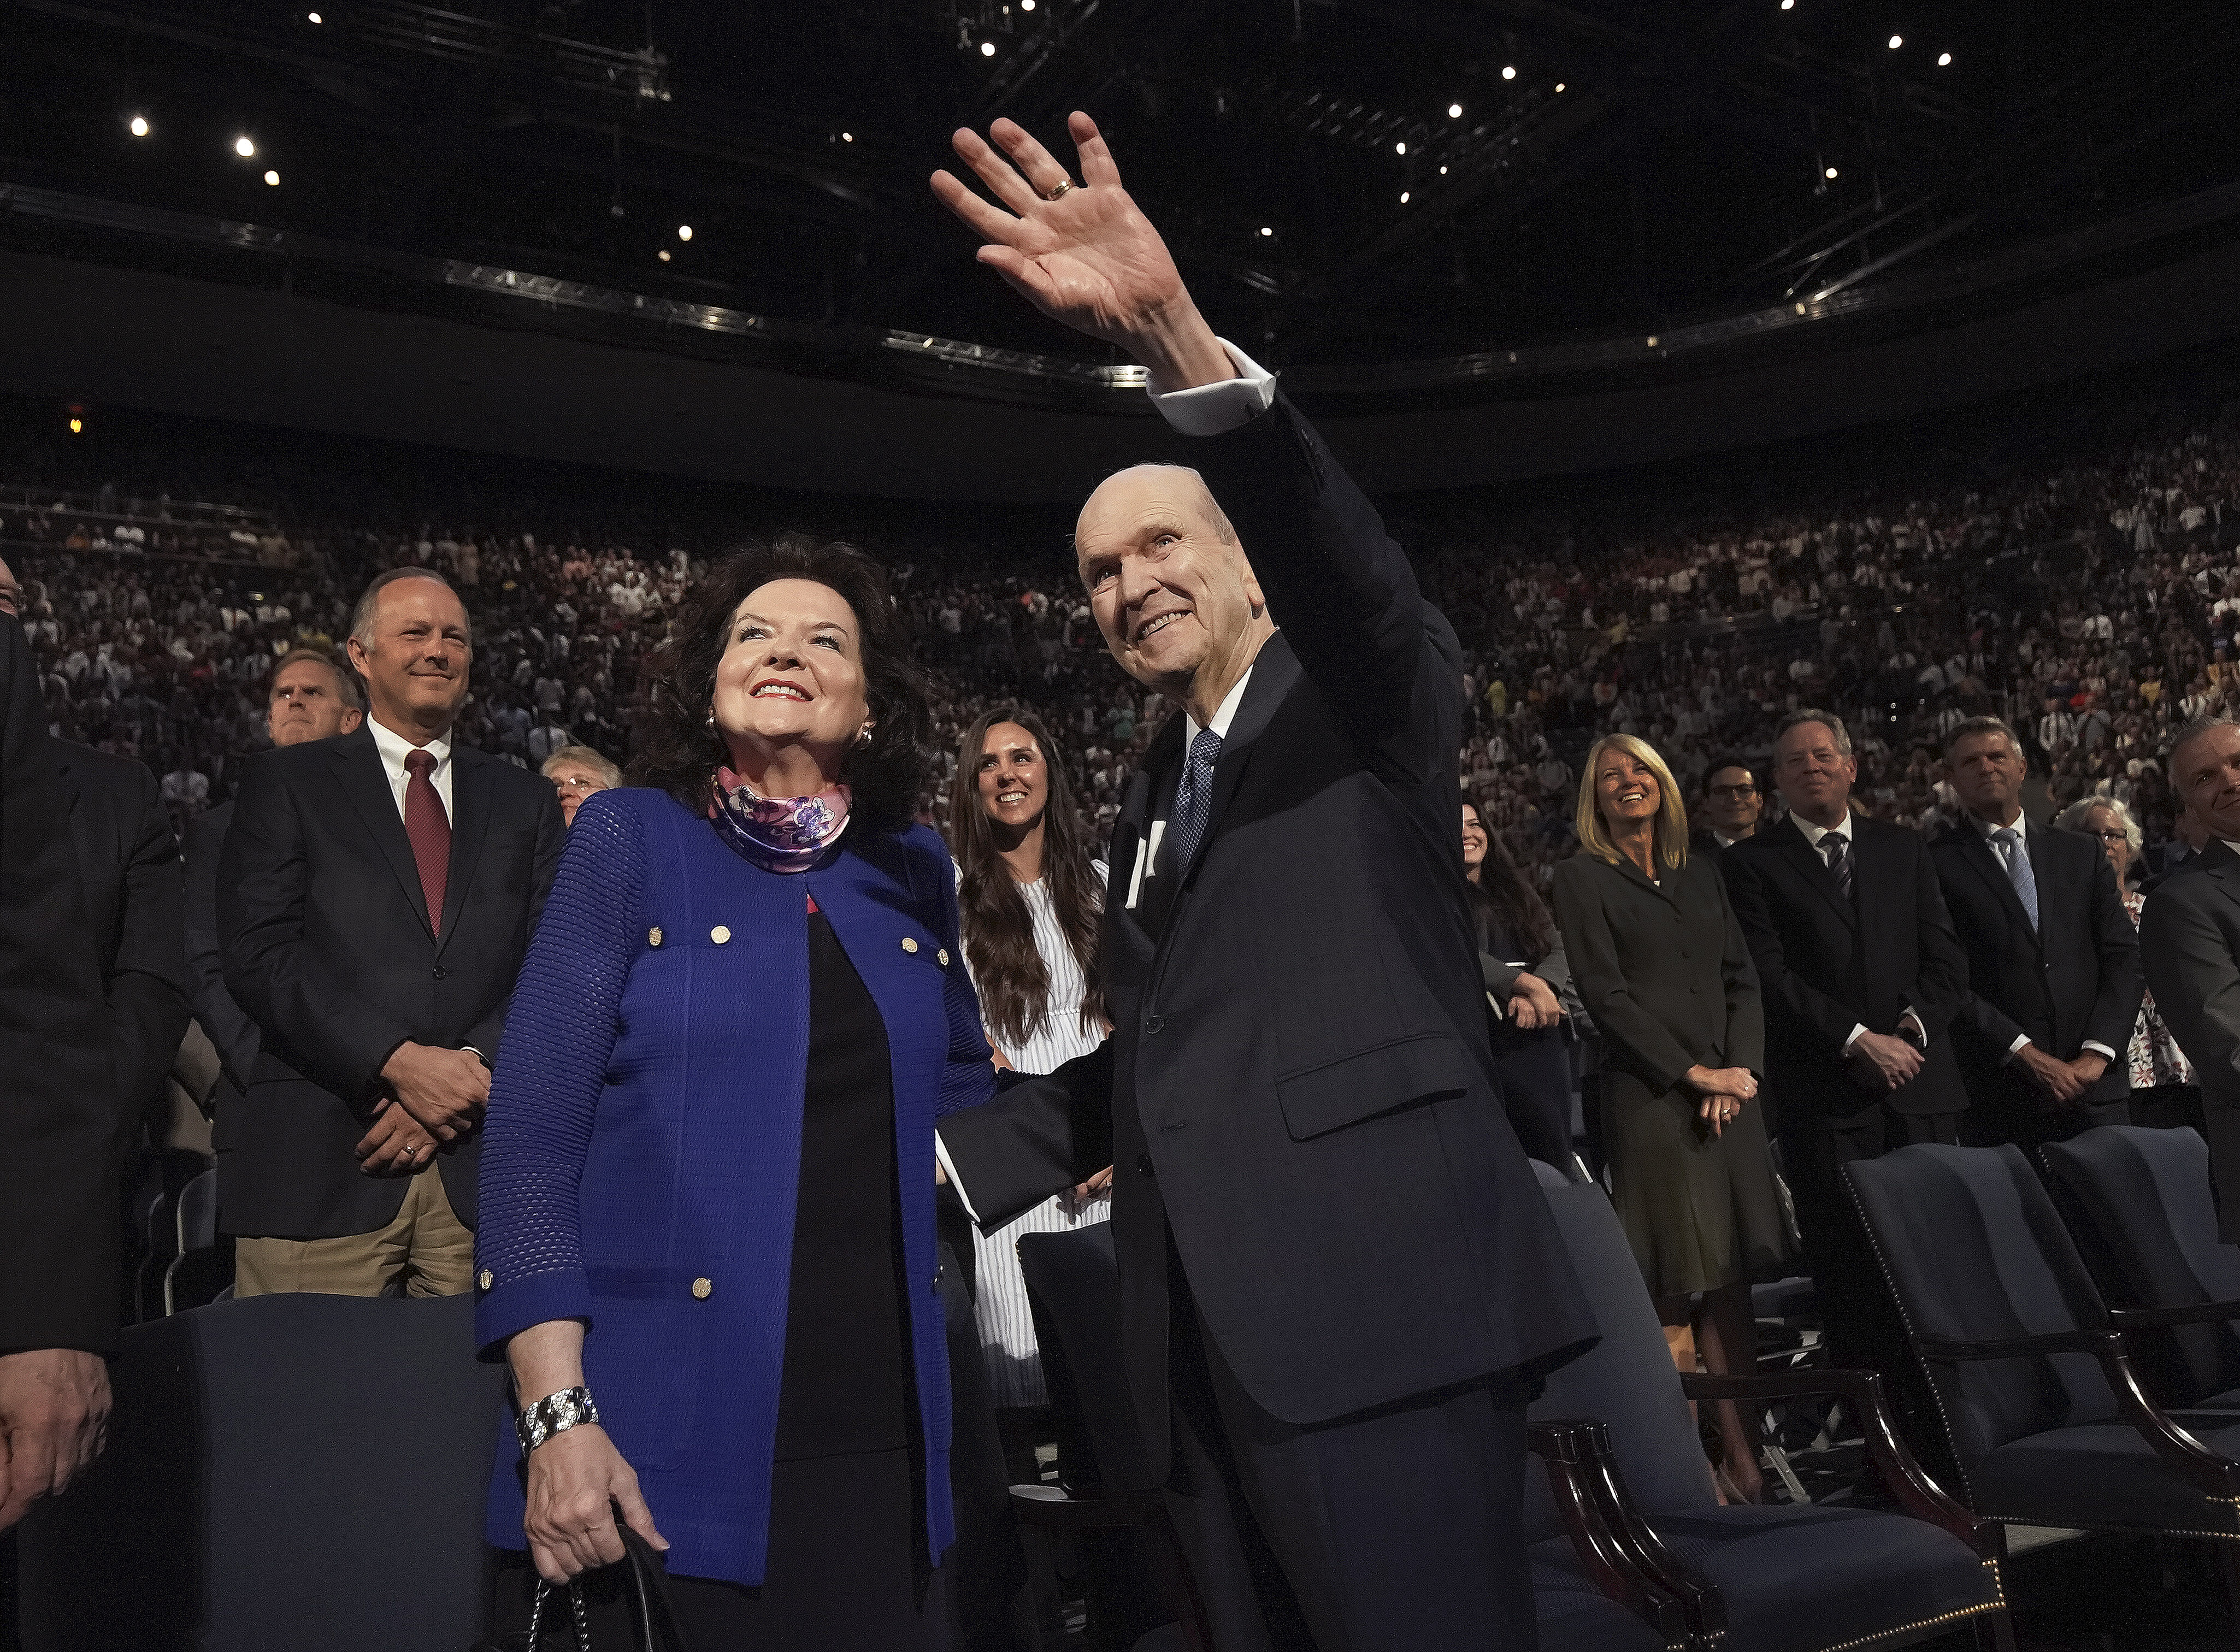 President Russell M. Nelson of The Church of Jesus Christ of Latter-day Saints and his wife, Sister Wendy Nelson, wave to students after a devotional at Brigham Young University in Provo on Tuesday, Sept. 17, 2019.